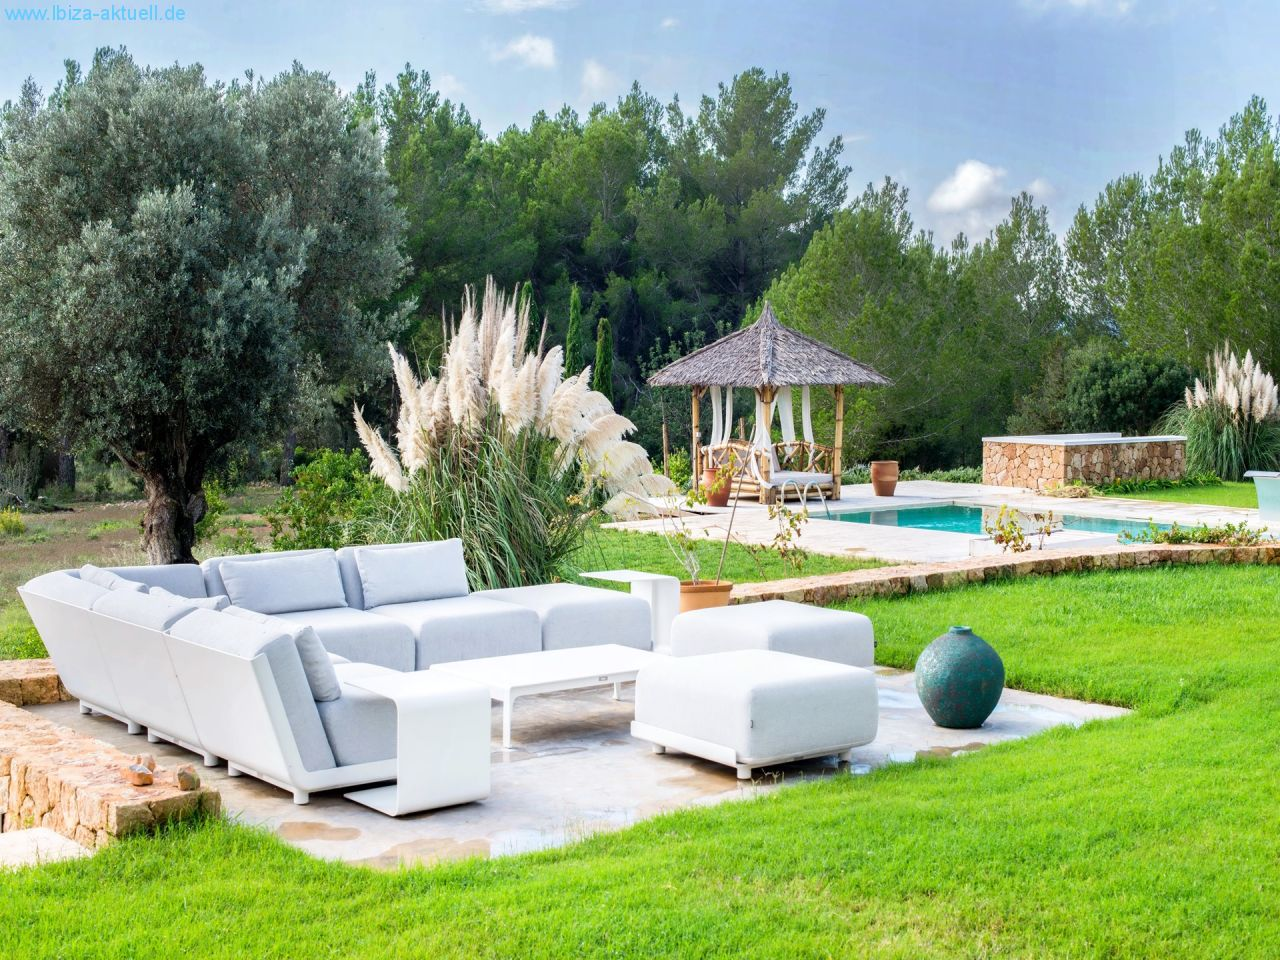 modern sofagroup on the terace infront of the house and large lawn